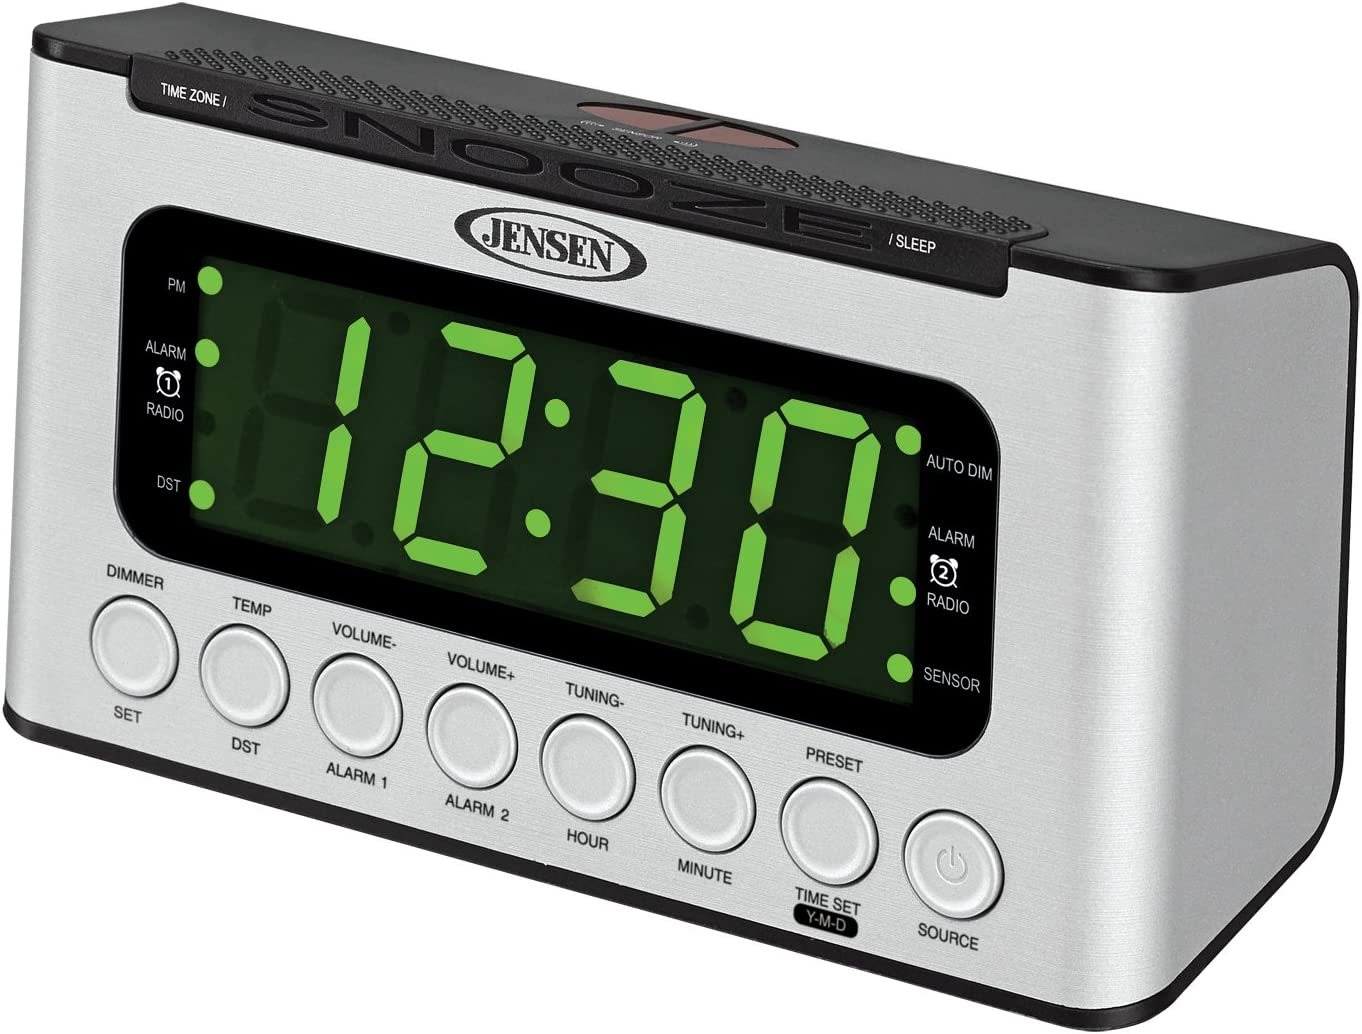 JENSEN JCR-231 Digital AM/FM Dual Alarm Clock Radio with Wave Sensor